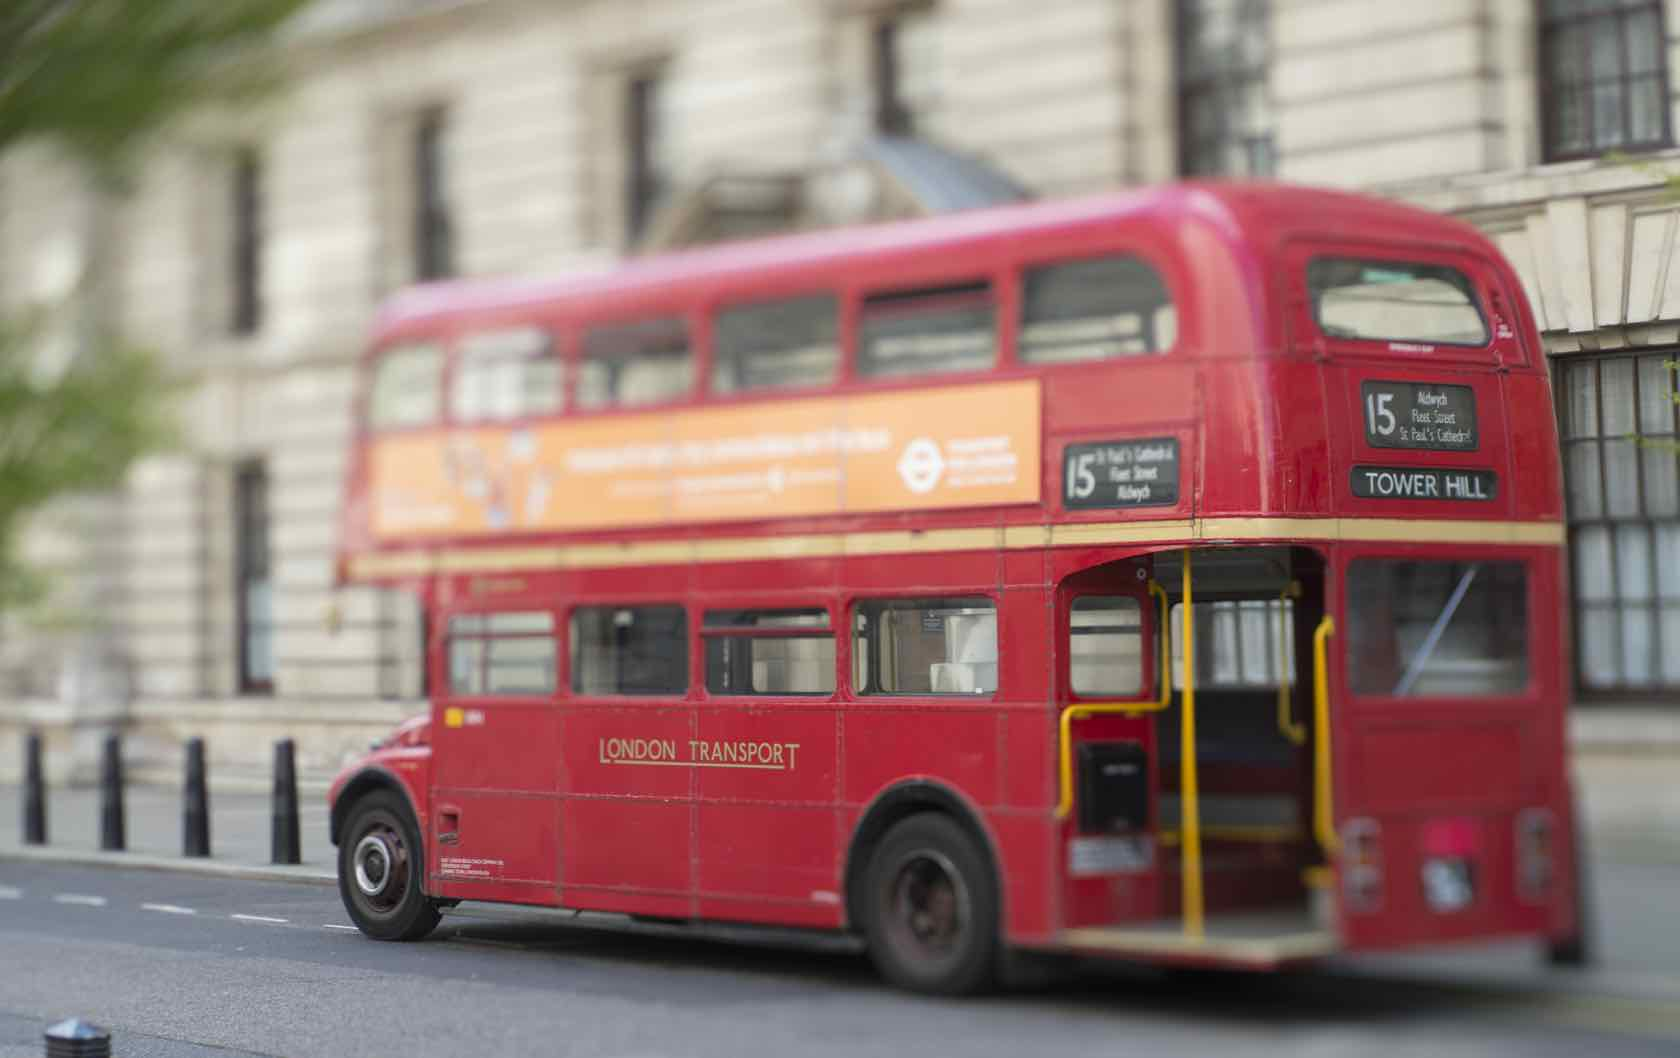 Top 5 Travel Tips to Get Around London